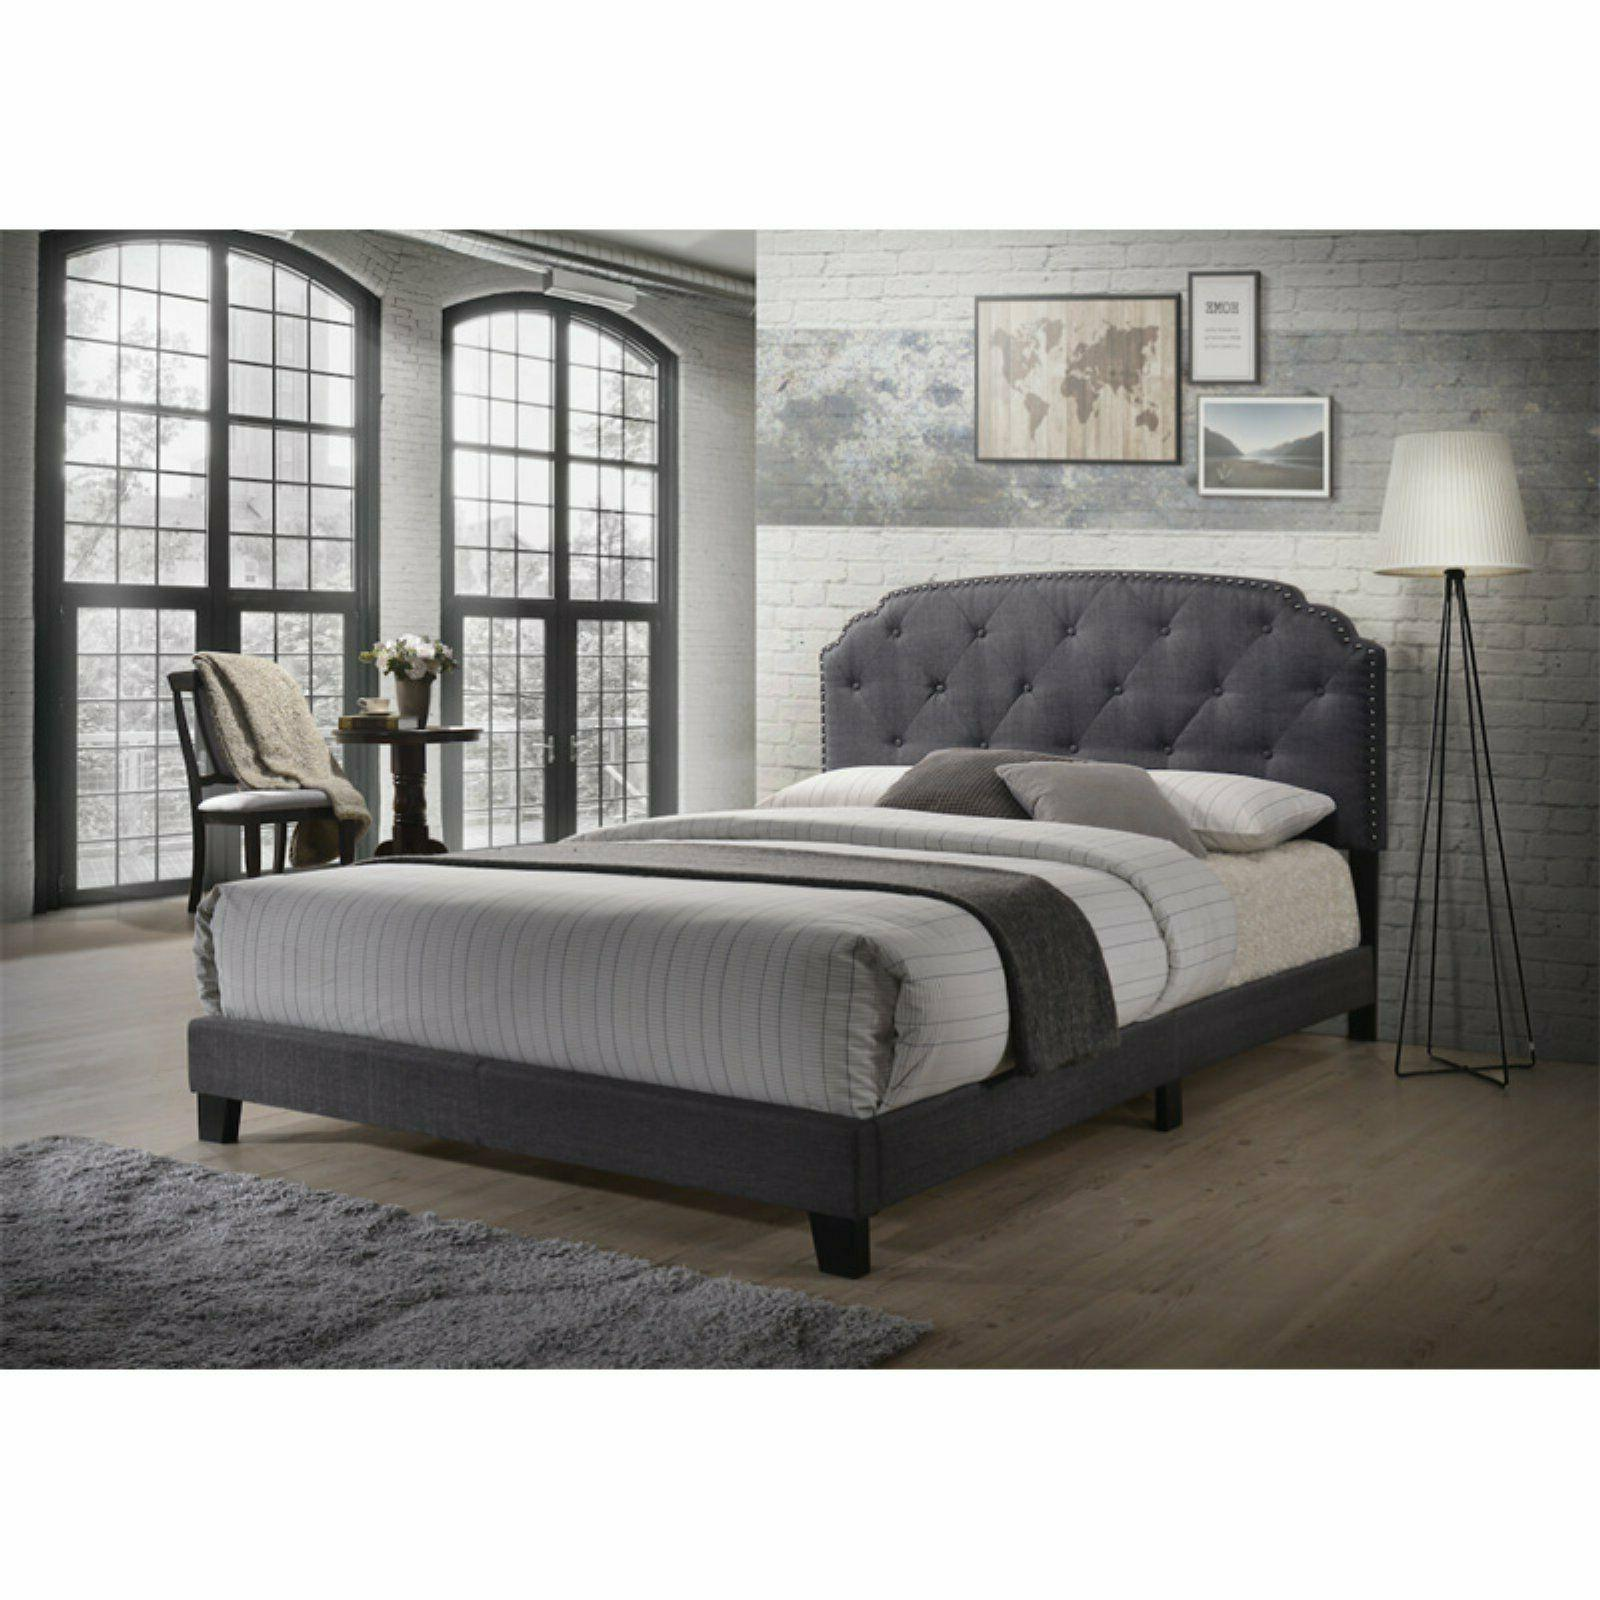 Charcoal Gray Queen Size Wood Panel Bed Frame with Headboard